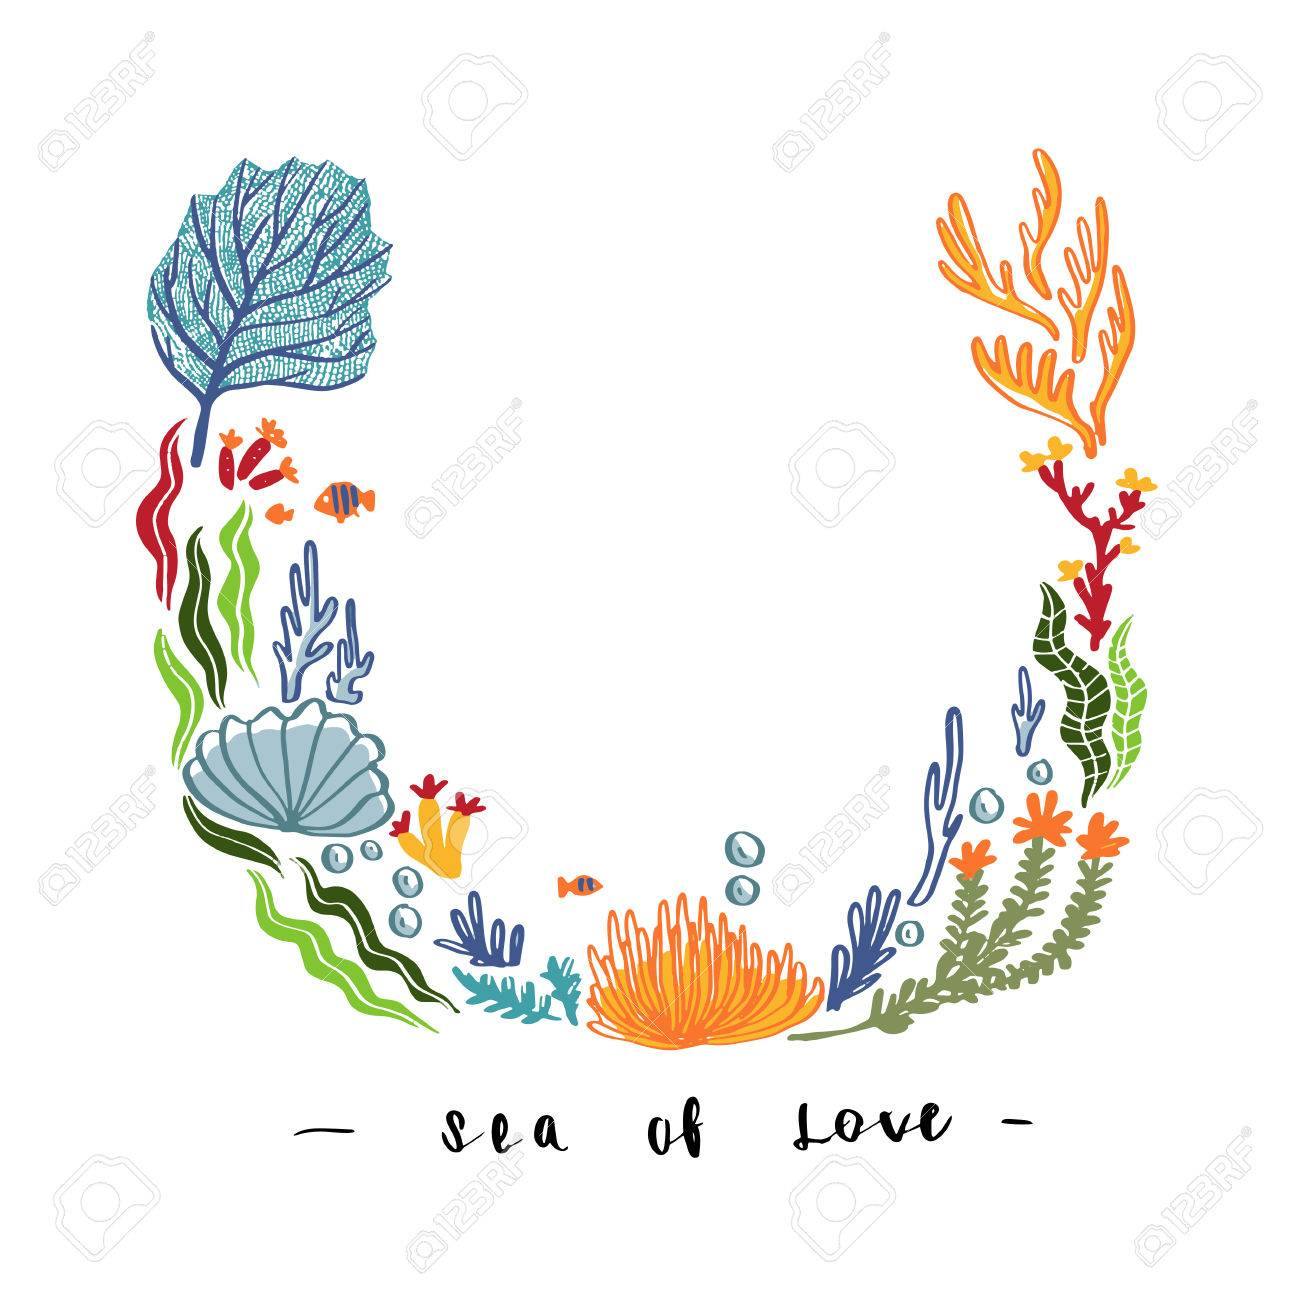 Hand draw sea weed and flowers coral design for mock up template hand draw sea weed and flowers coral design for mock up template greeting invitation izmirmasajfo